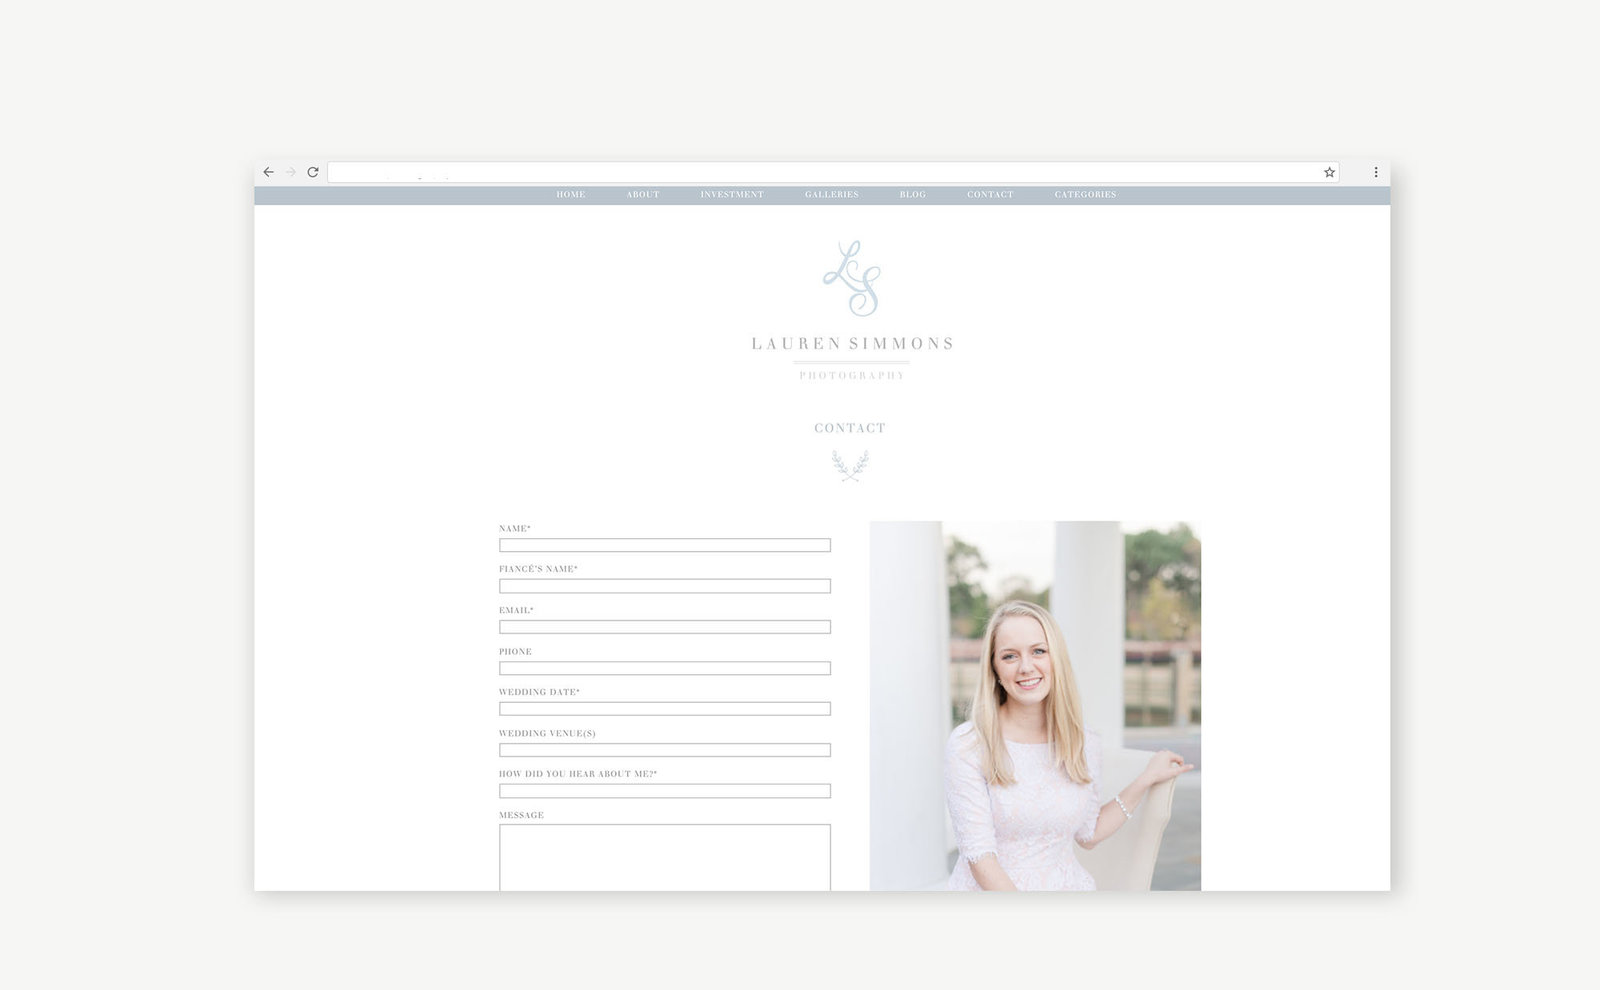 branding-for-photographers-web-design-lauren-simmons-04